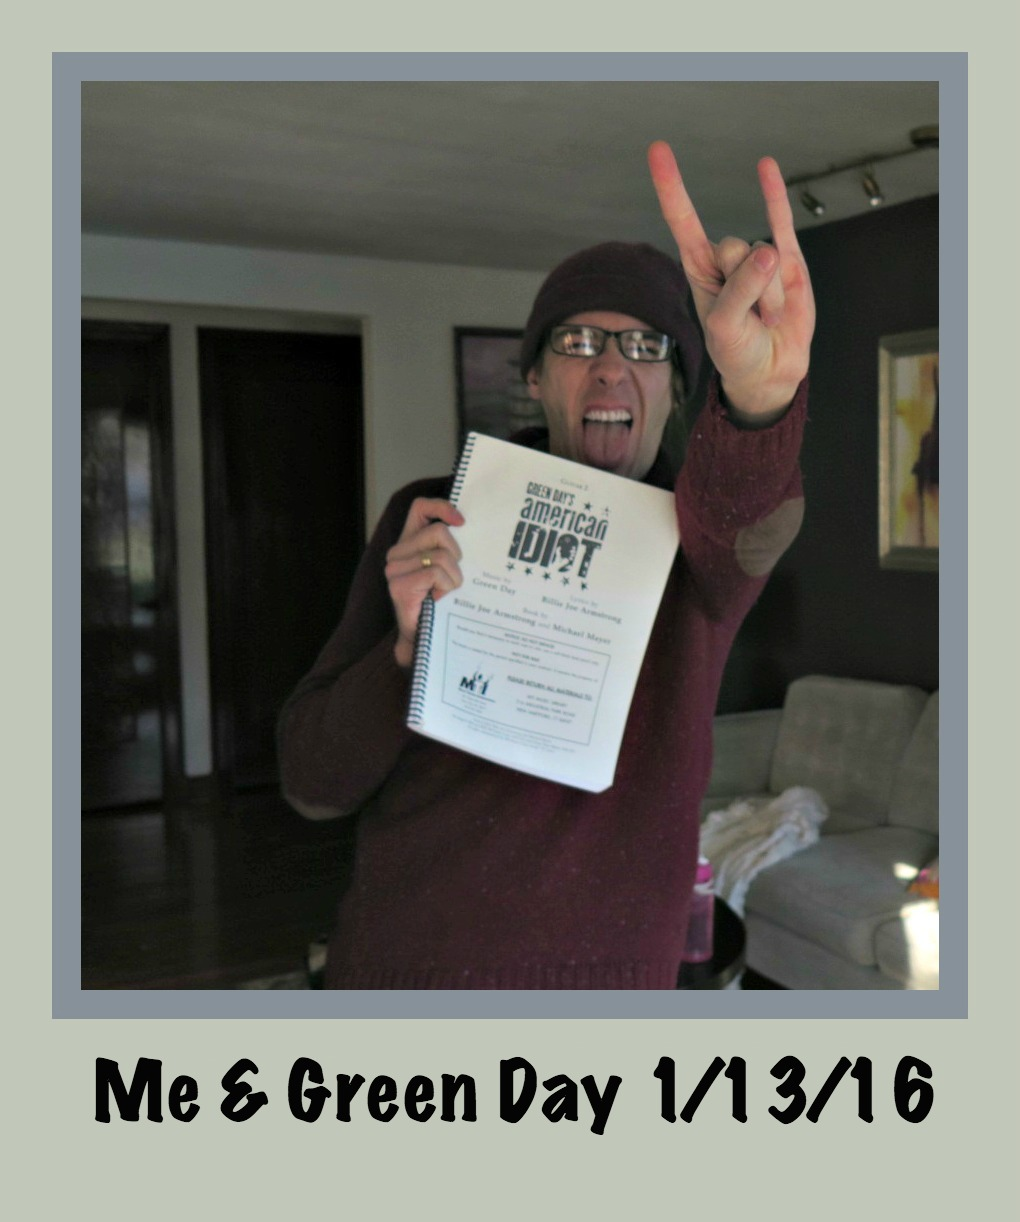 Me & Green Day